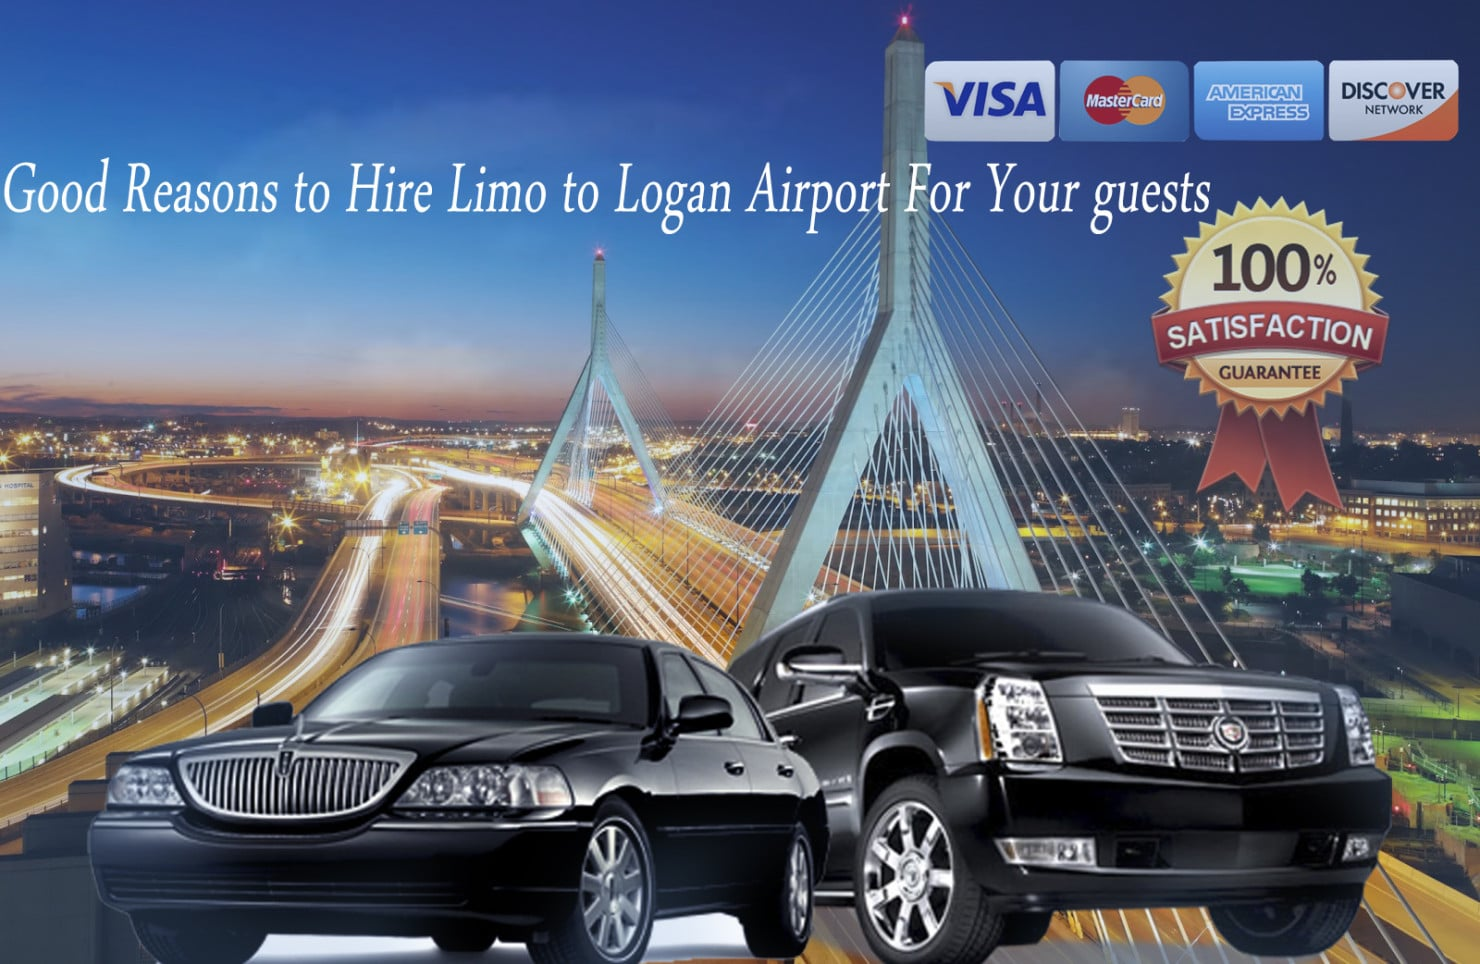 Good Reasons to Hire Limo to Logan Airport For Your guests